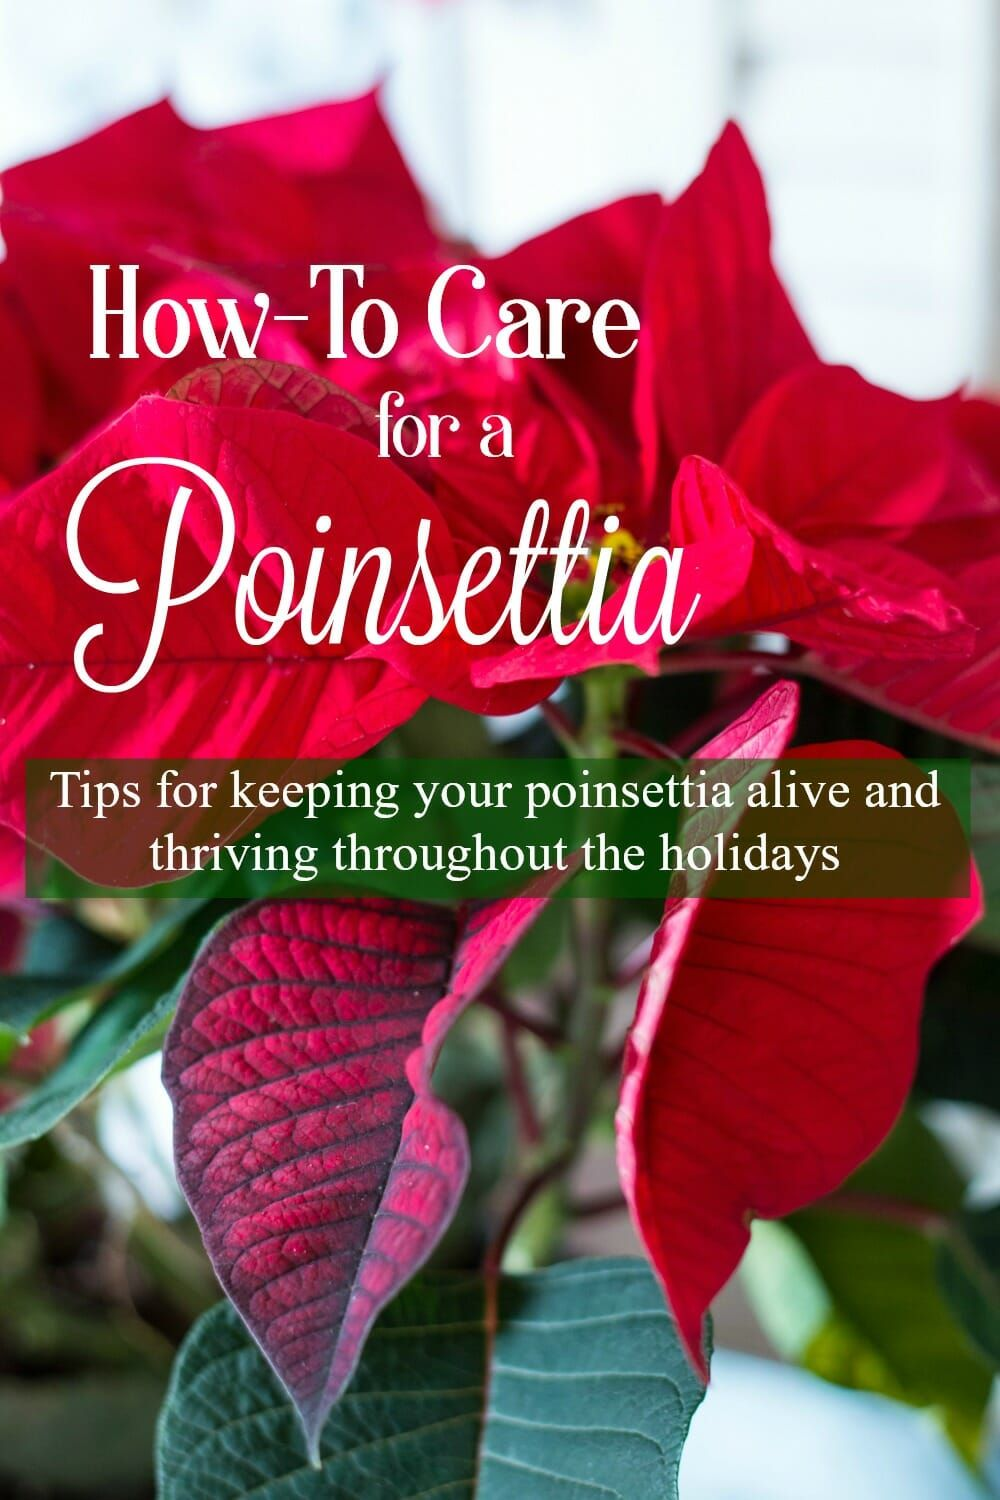 How To Care For A Poinsettia Plus Free Printable Poinsettia Care Gift Tags Poinsettia Care Poinsettia Plant Flower Pot Design